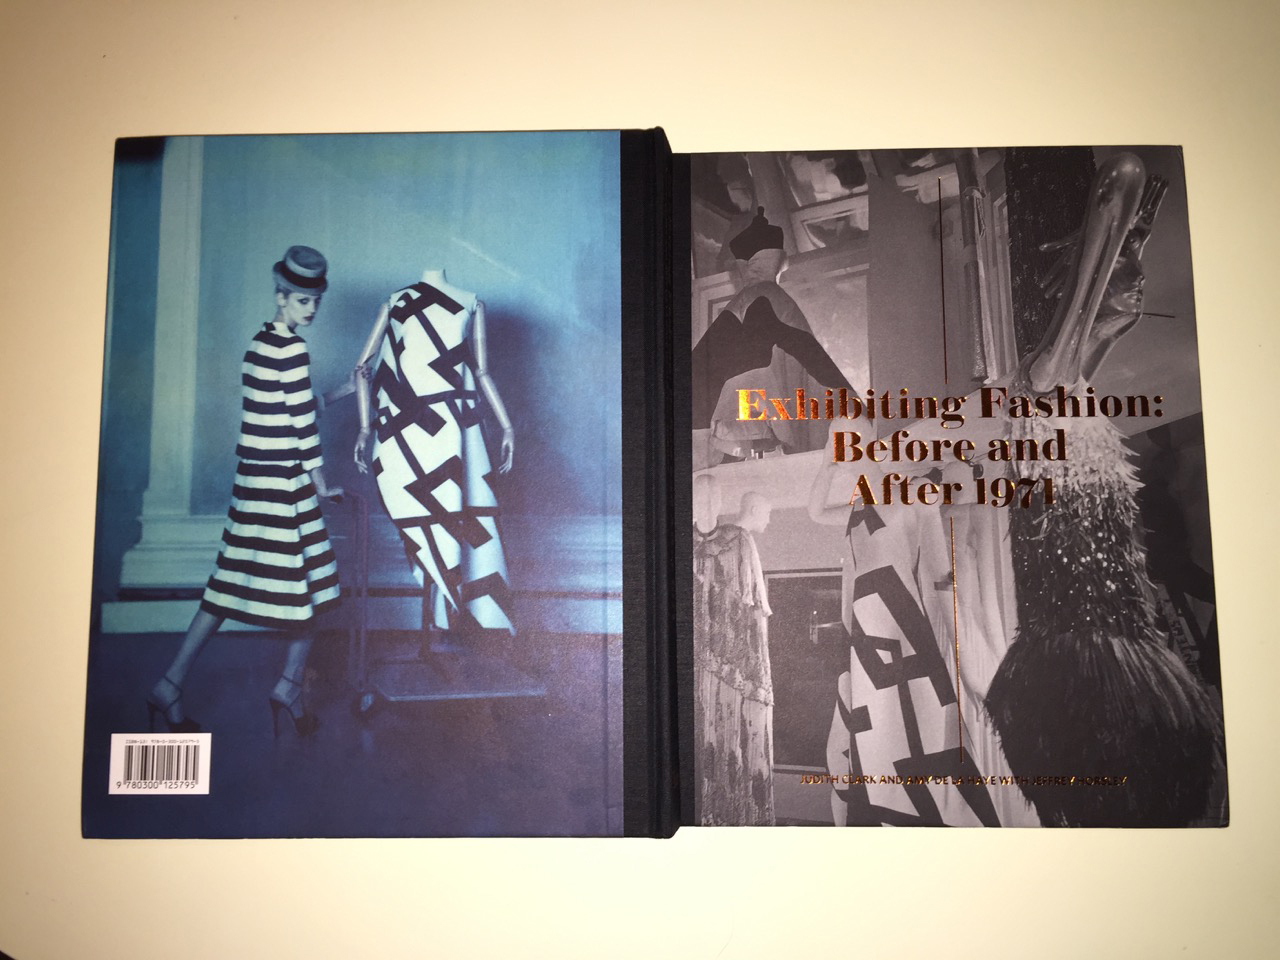 Front and back covers of Exhibiting Fashion: Before and After 1971, Yale University Press,